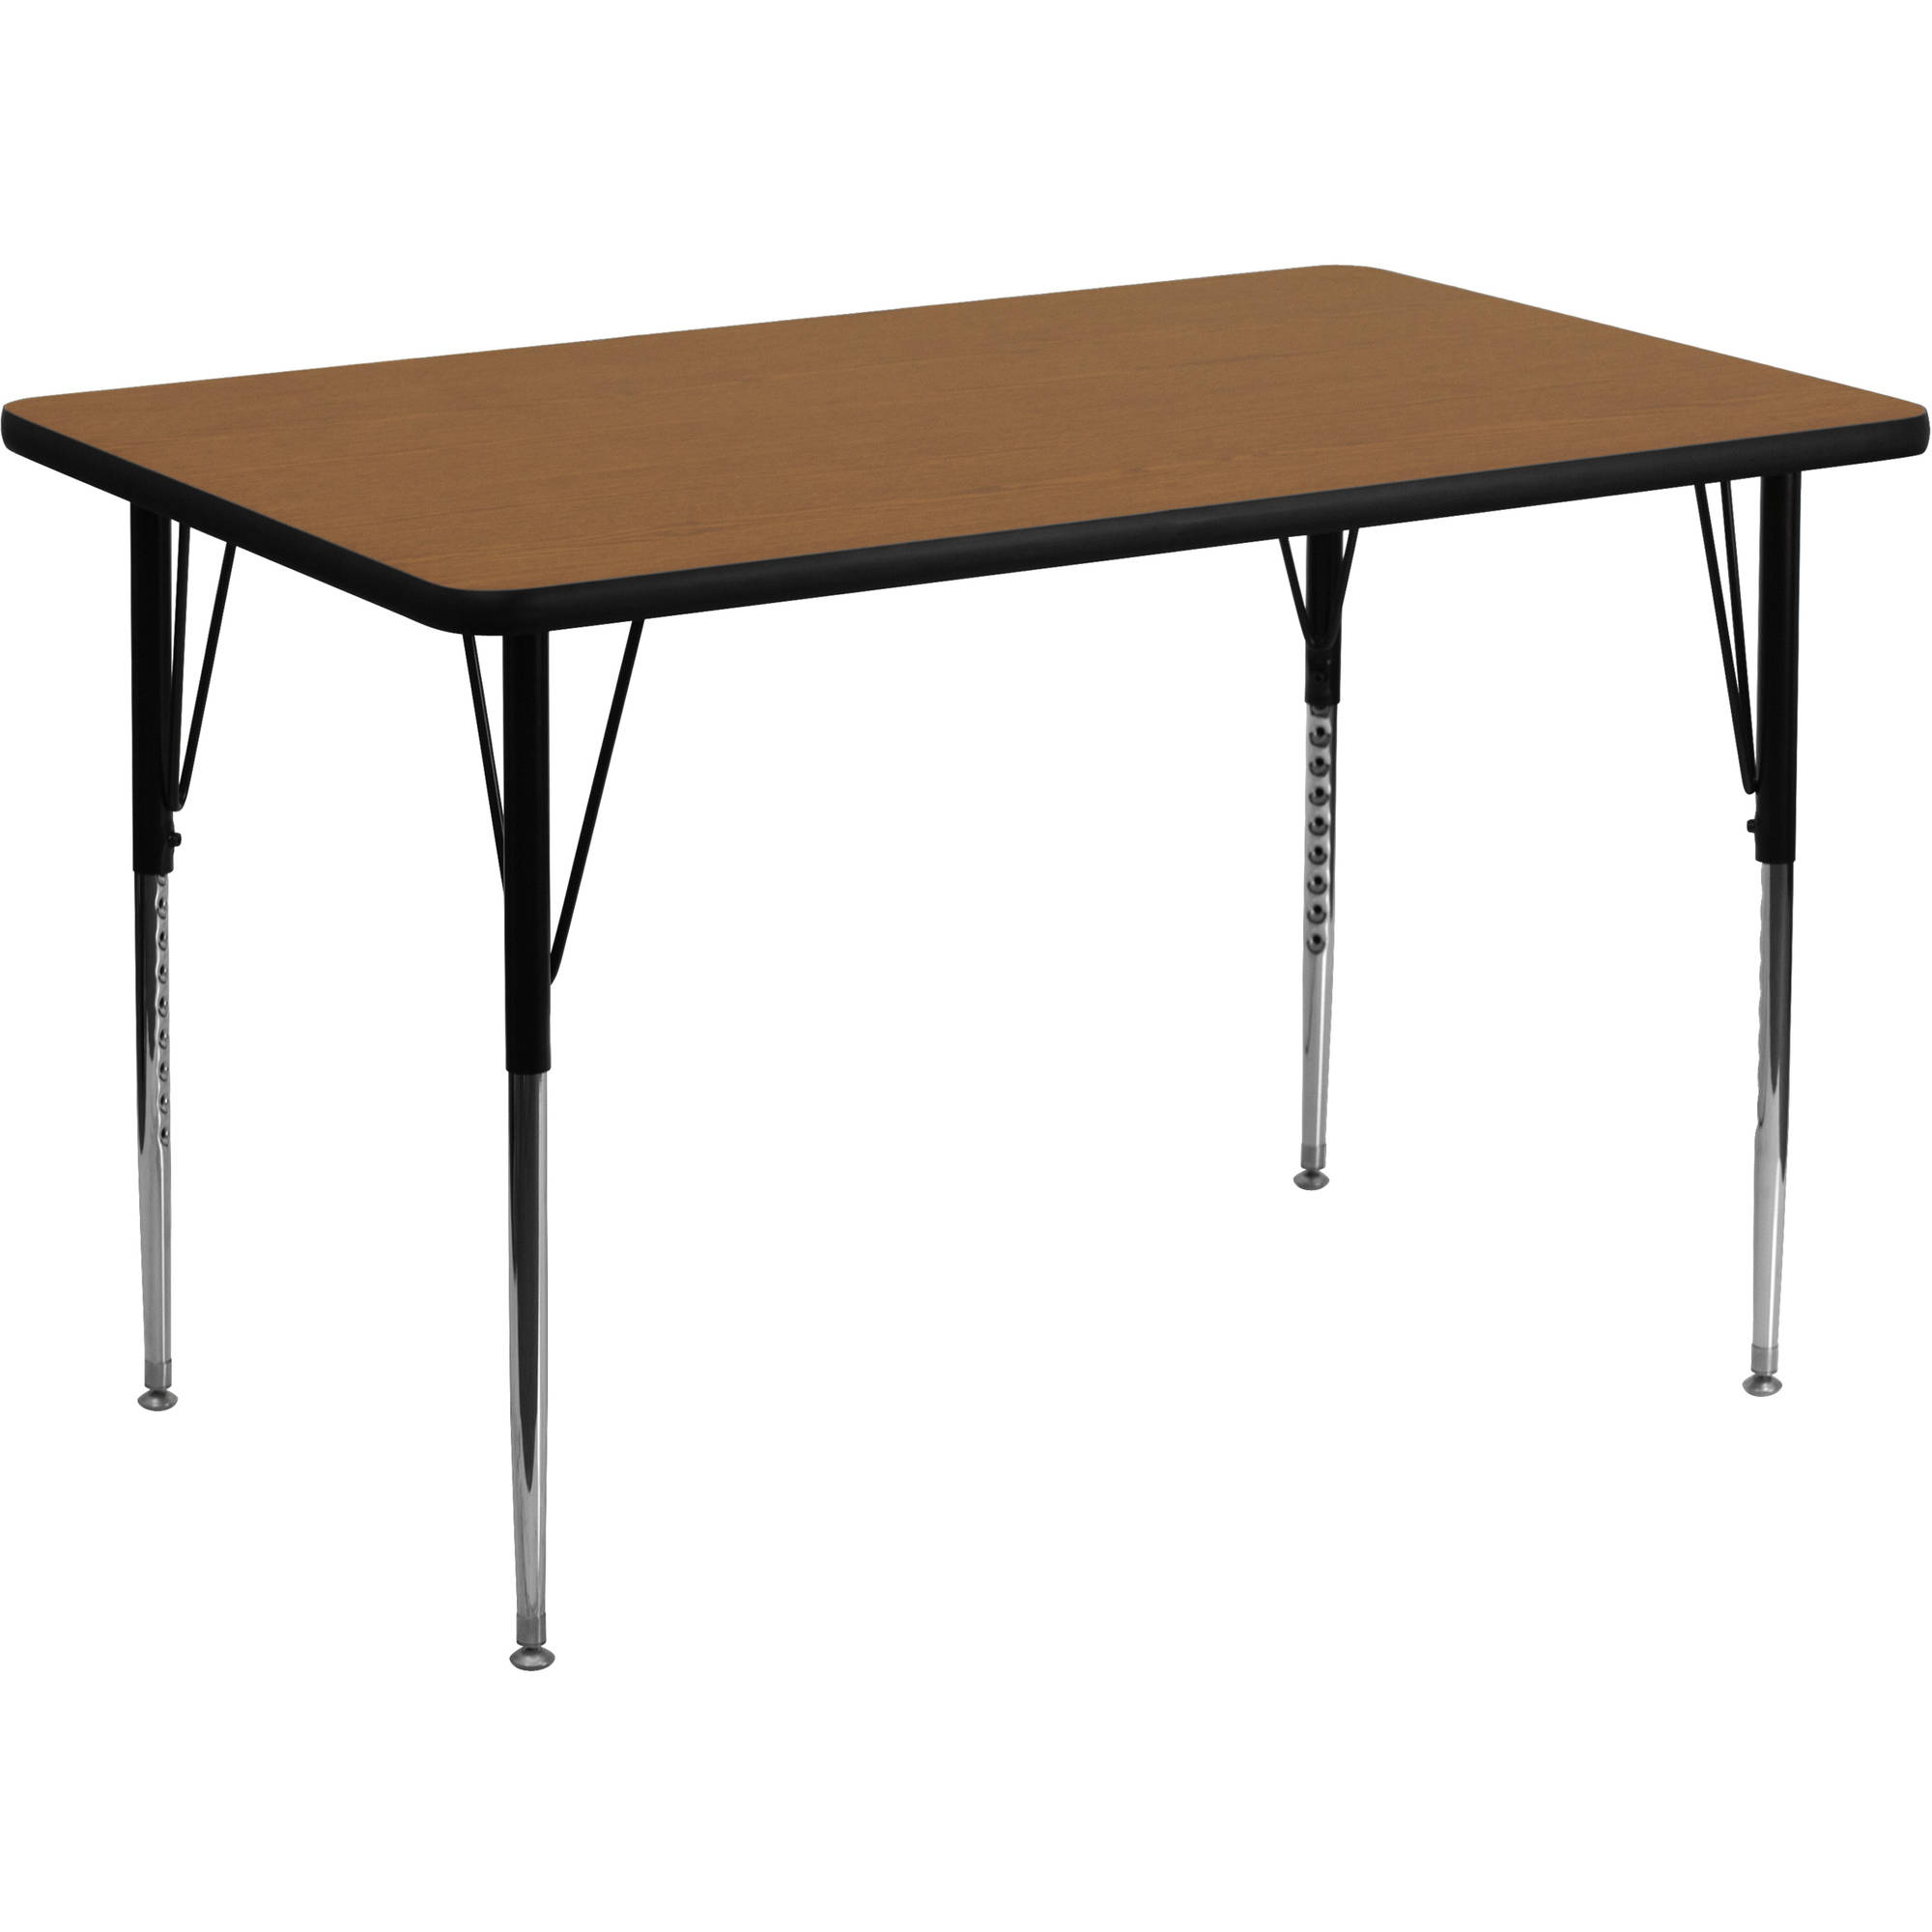 Flash Furniture 30''W x 48''L Rectangular Activity Table with Oak Thermal Fused Laminate Top and Standard Height Adjustable Legs